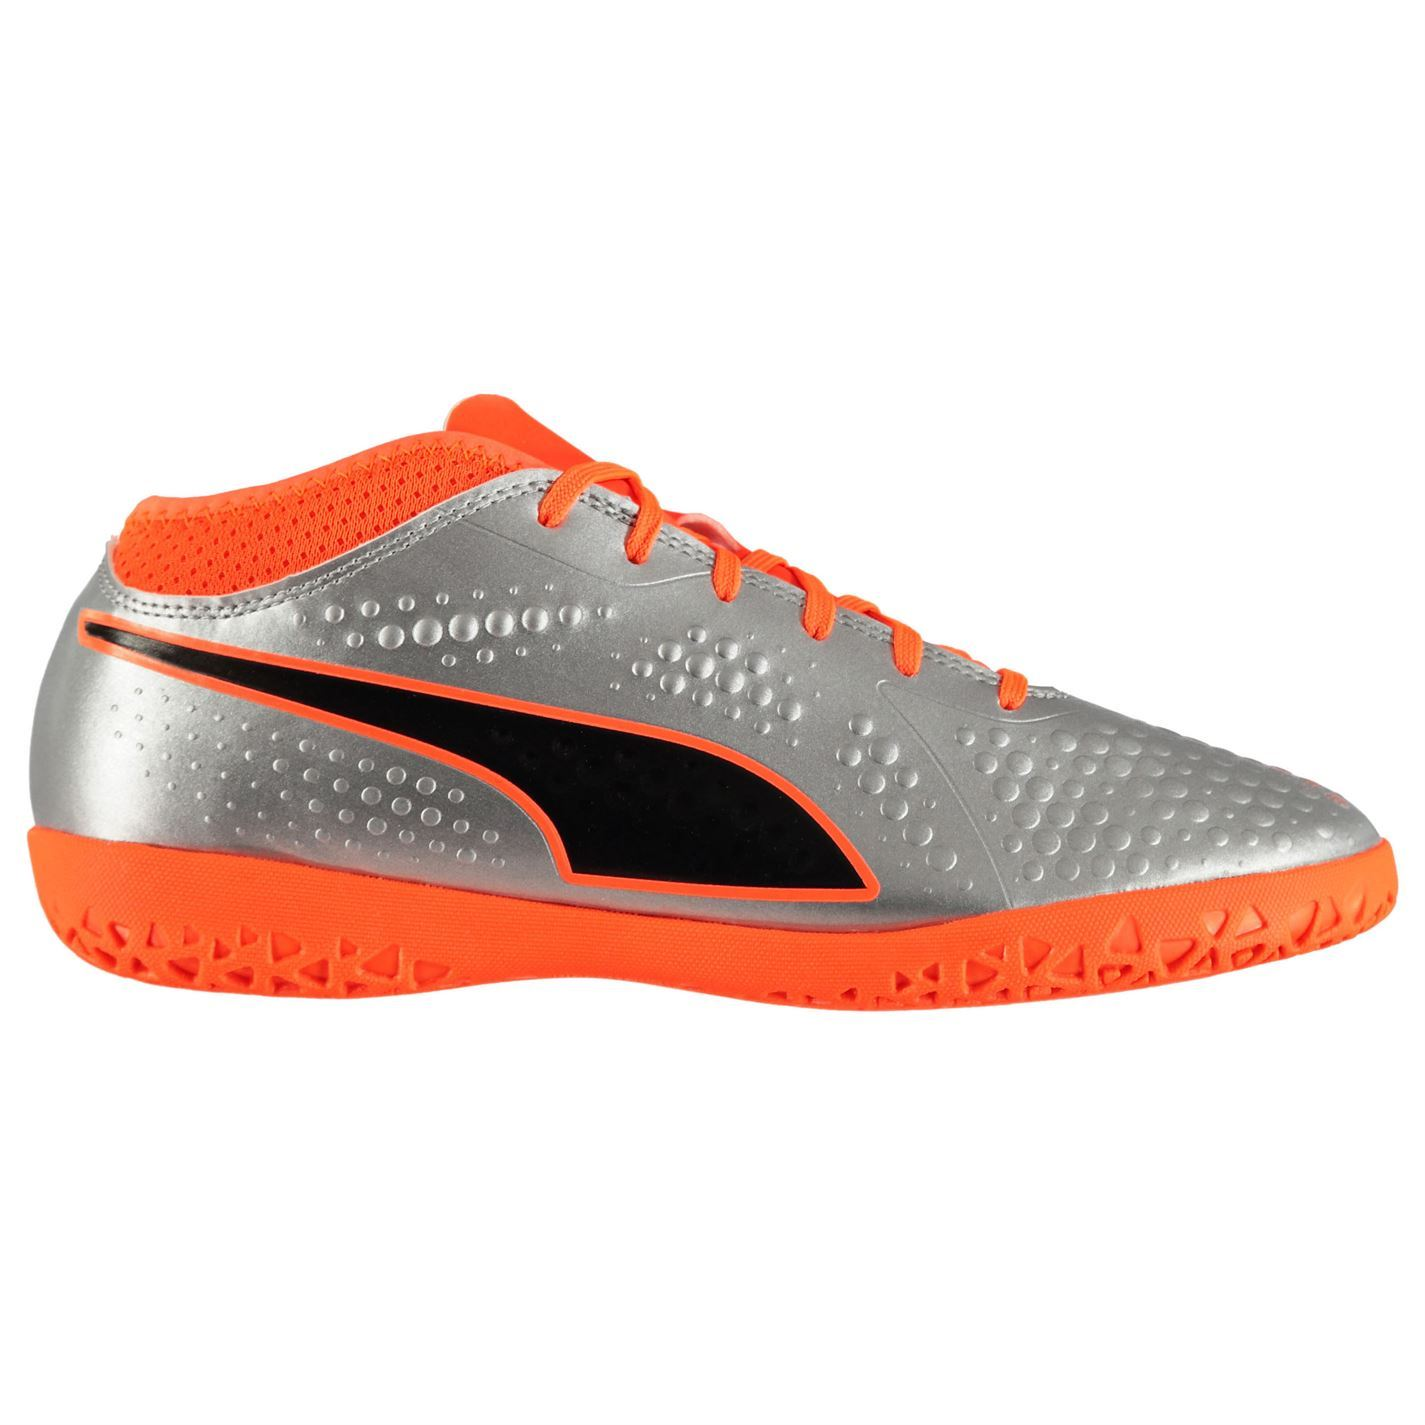 9bd480f50 Details about Puma ONE 4 Indoor Football Trainers Mens Silver Orange Soccer Futsal  Shoes